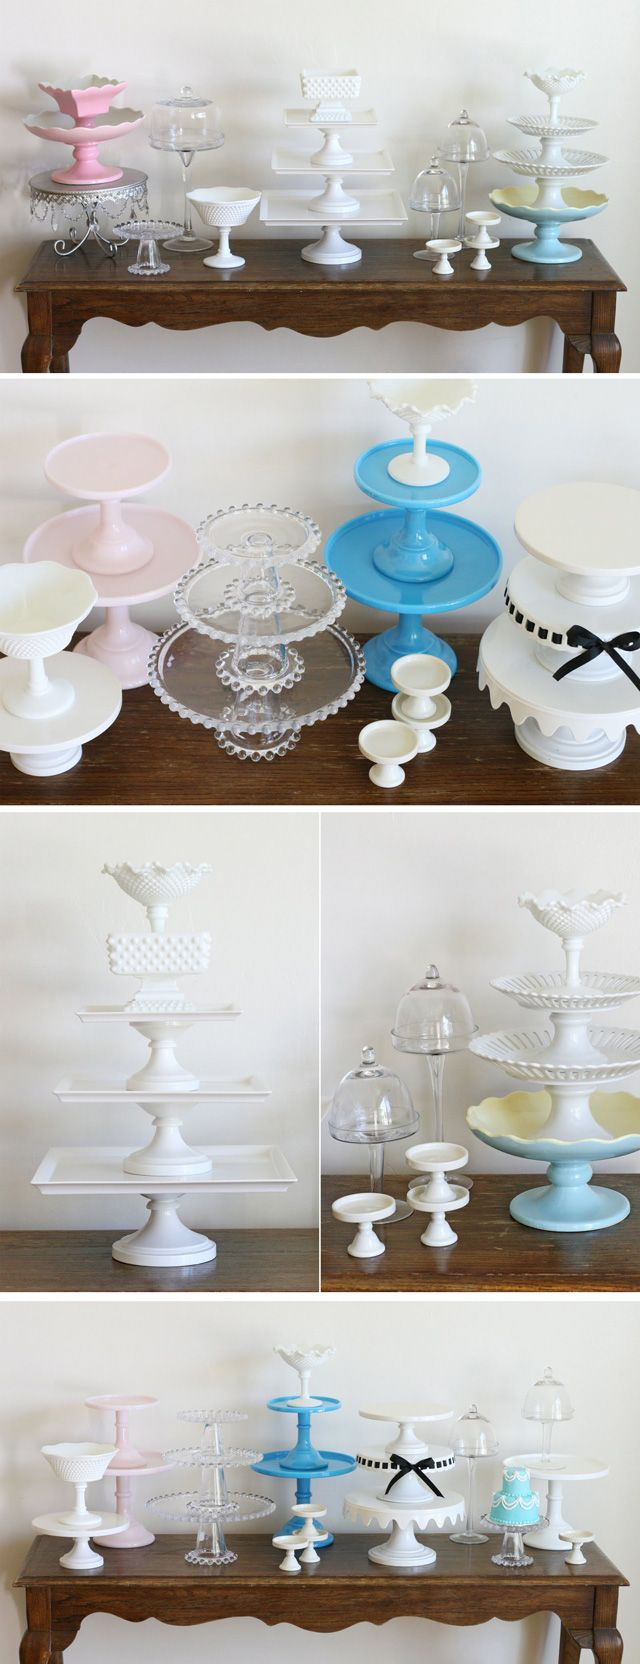 For the love of cake stands